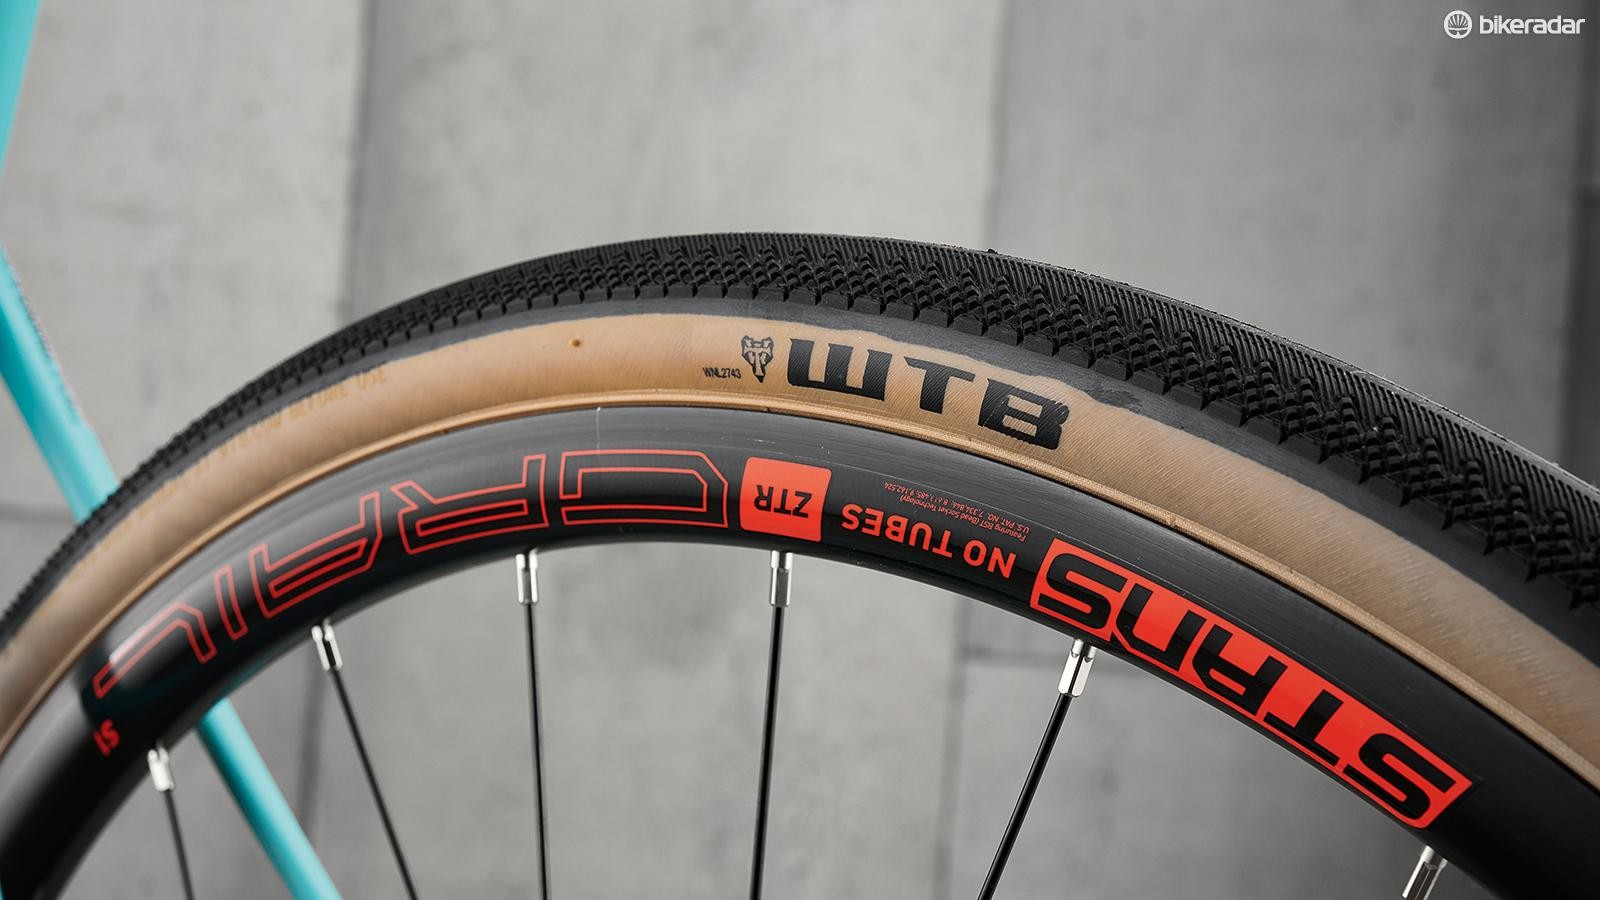 WTB tyres are almost slick in comparision with the more rugged rubber on the competition